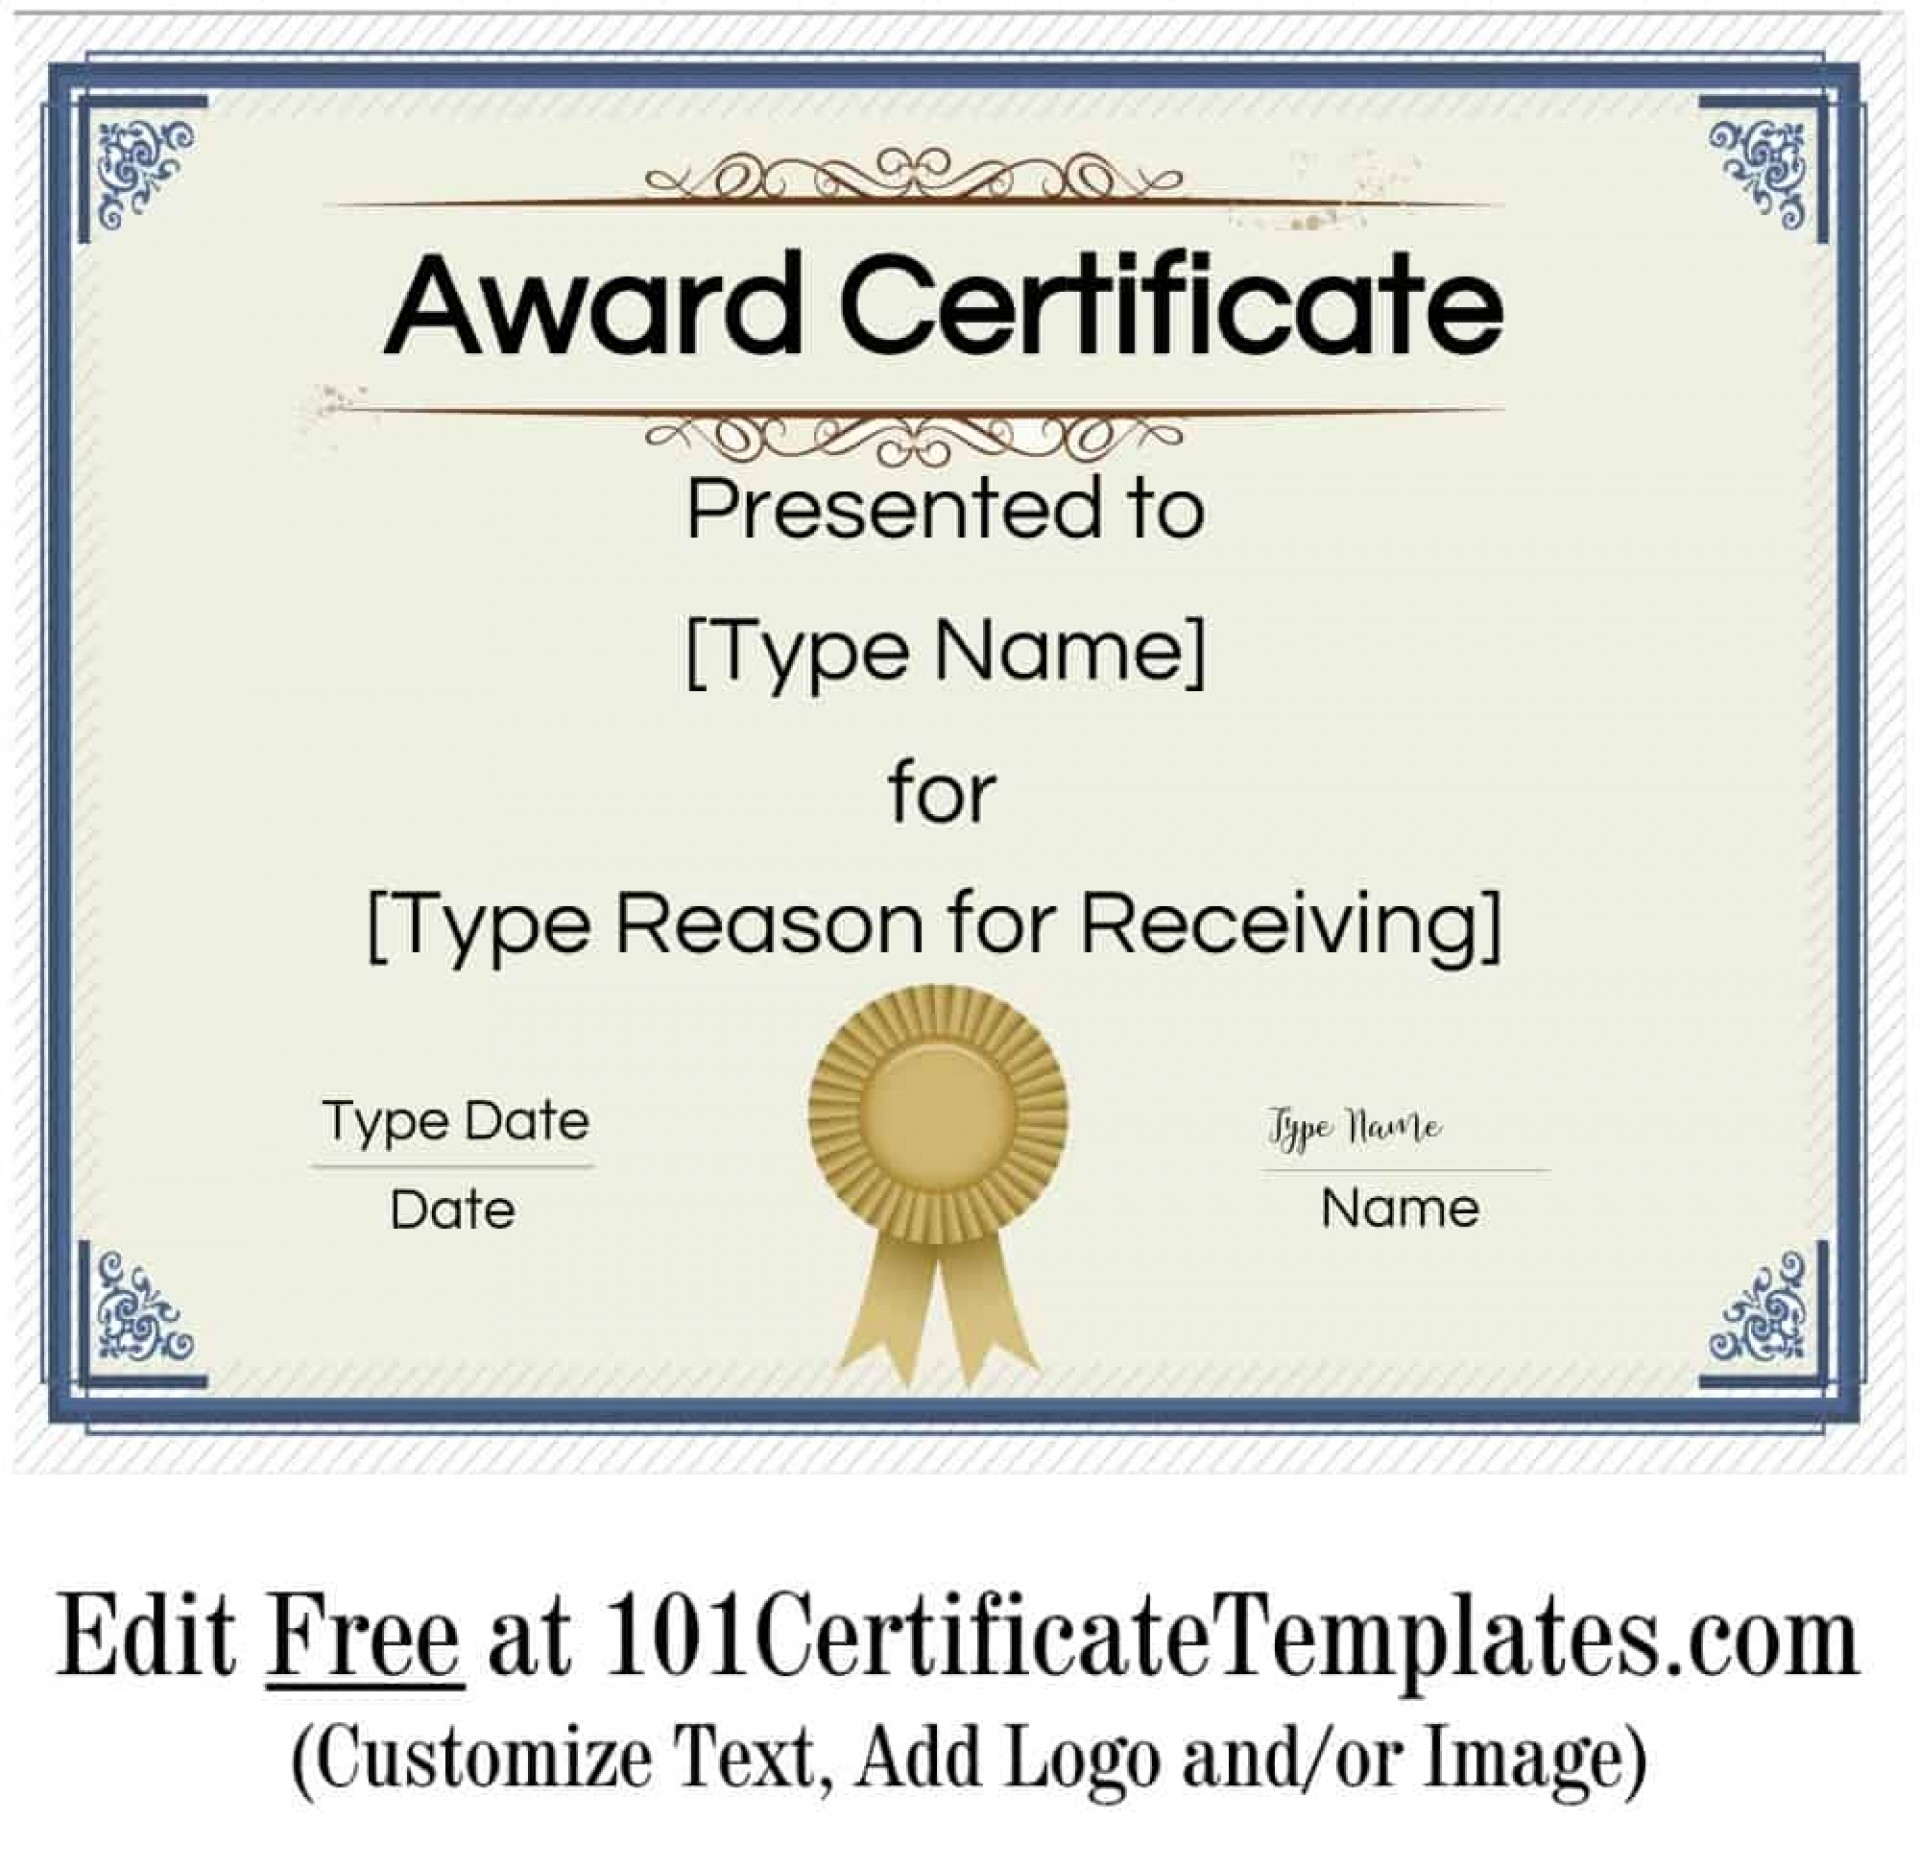 007 Magnificent Certificate Of Achievement Template Free Image  Award Download Word1920